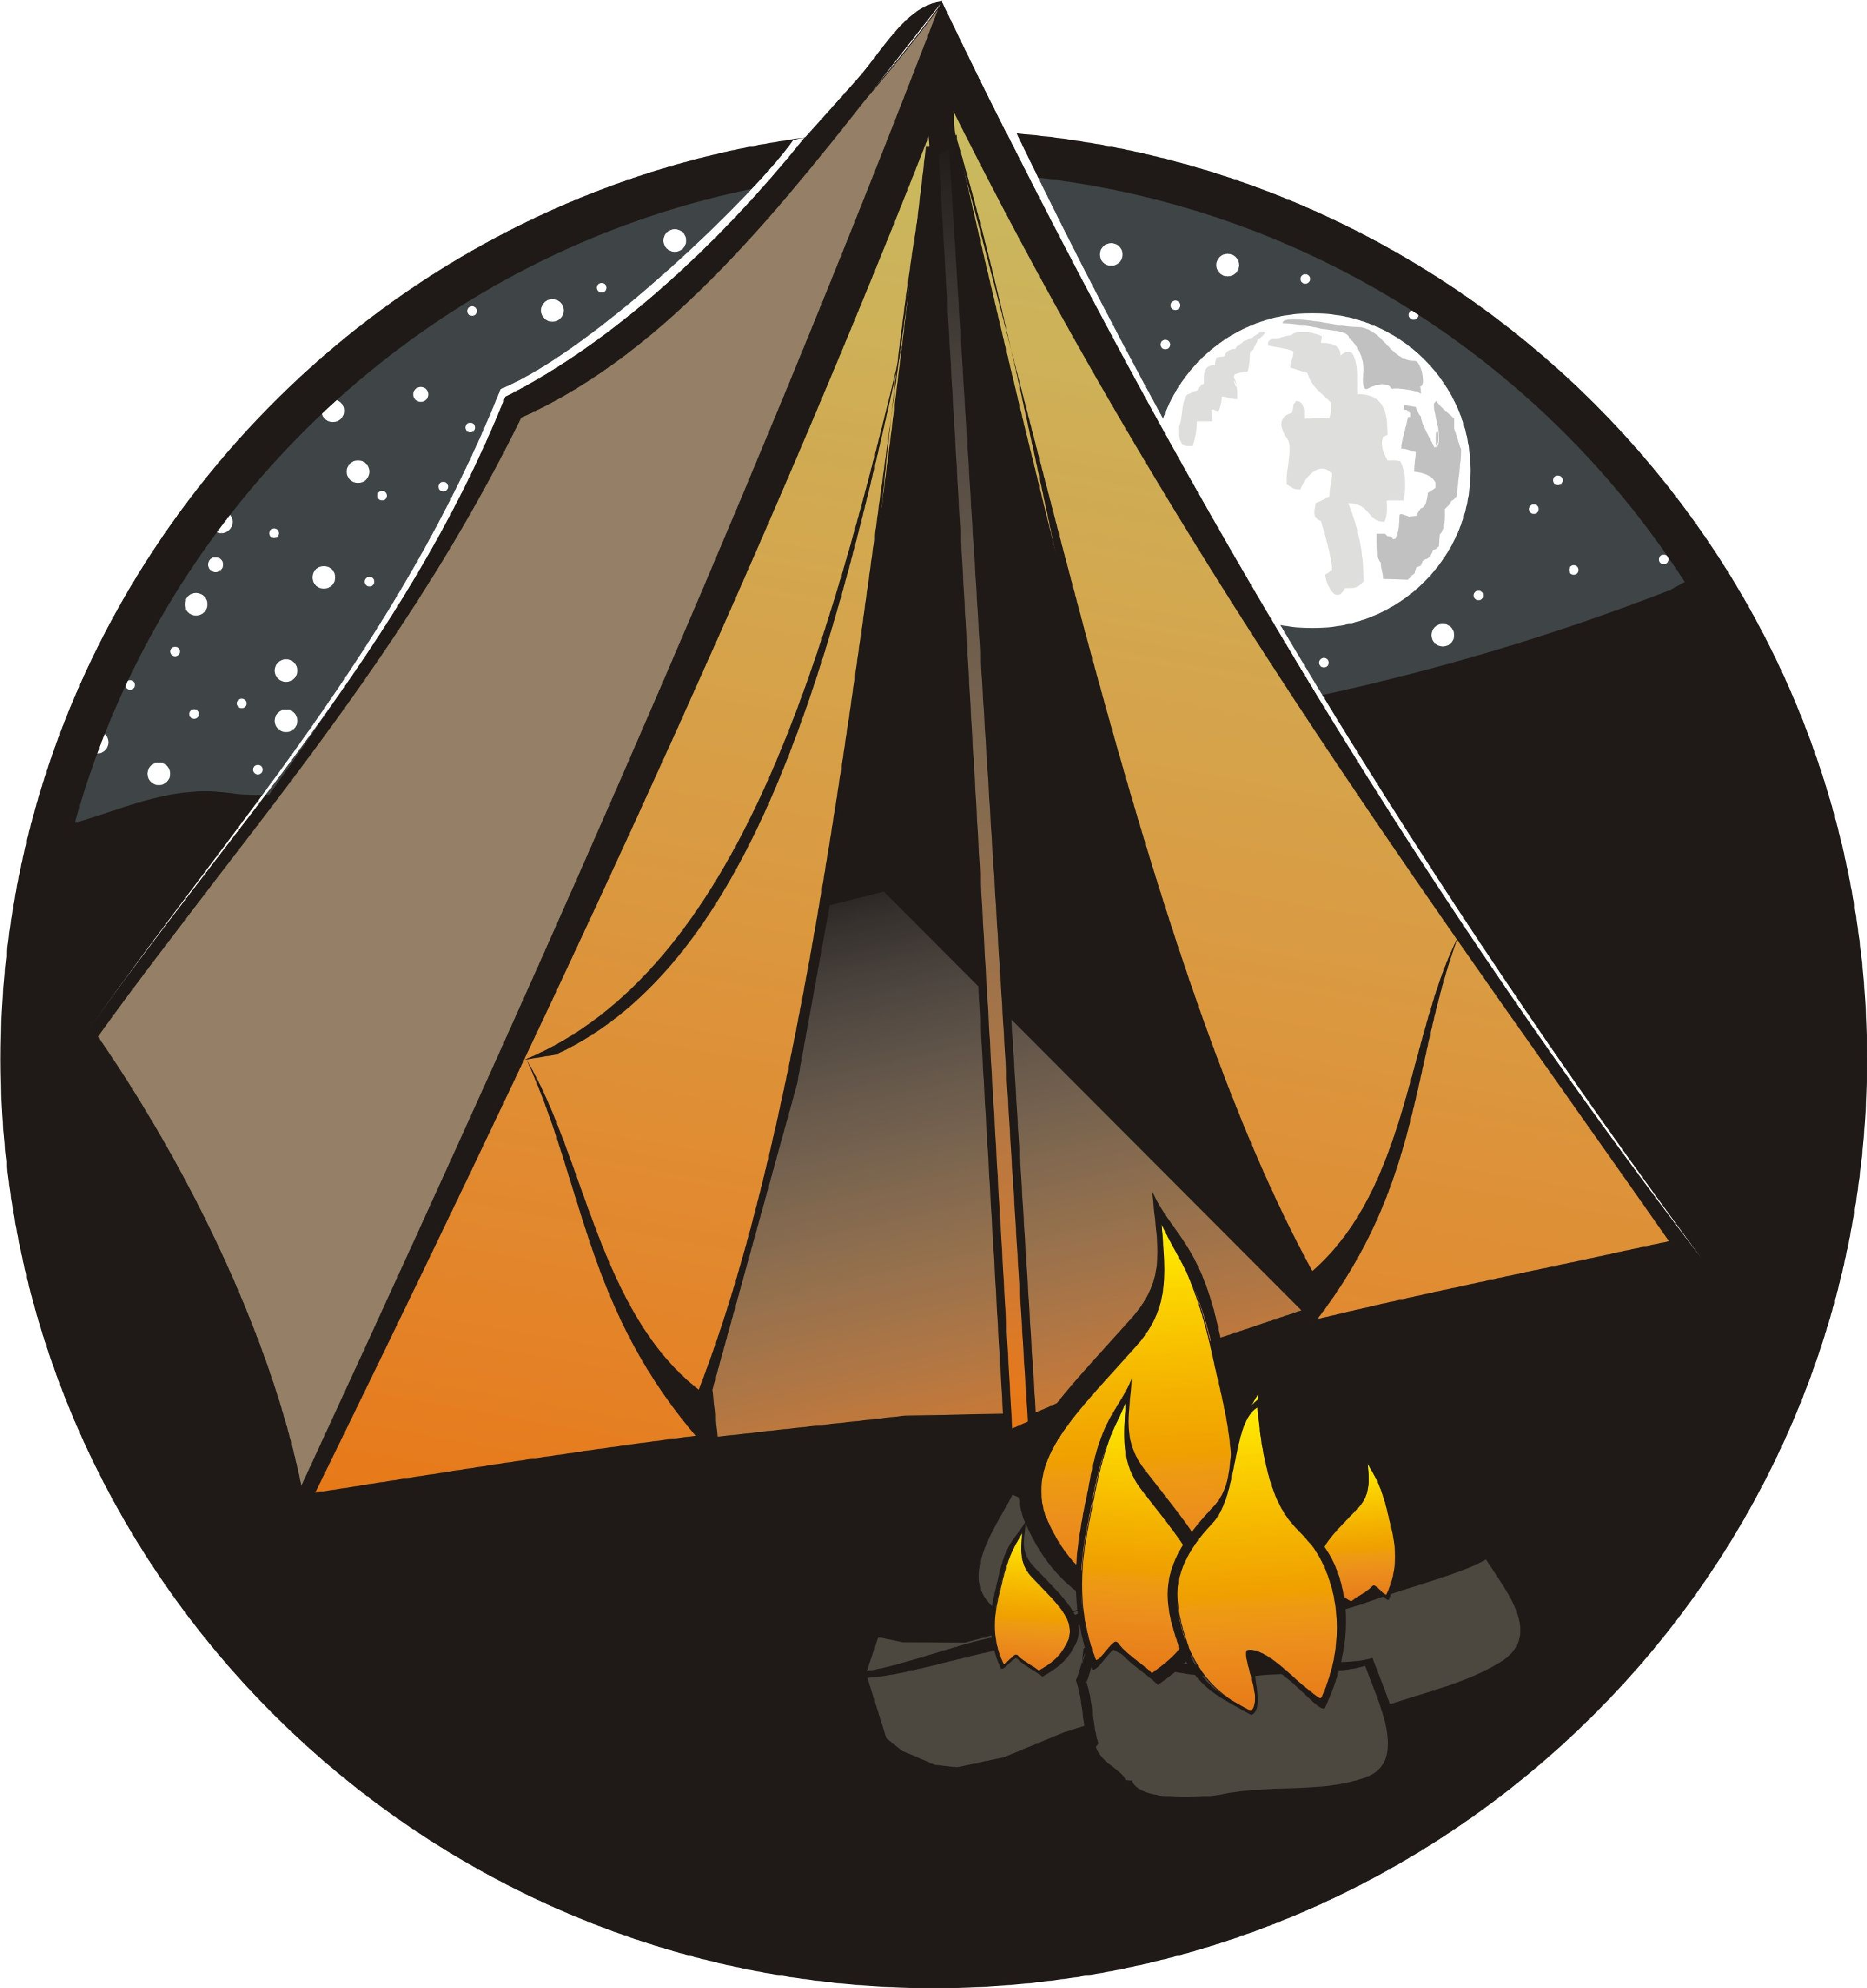 banner royalty free Tent and campfire clipart. Camping clip art free